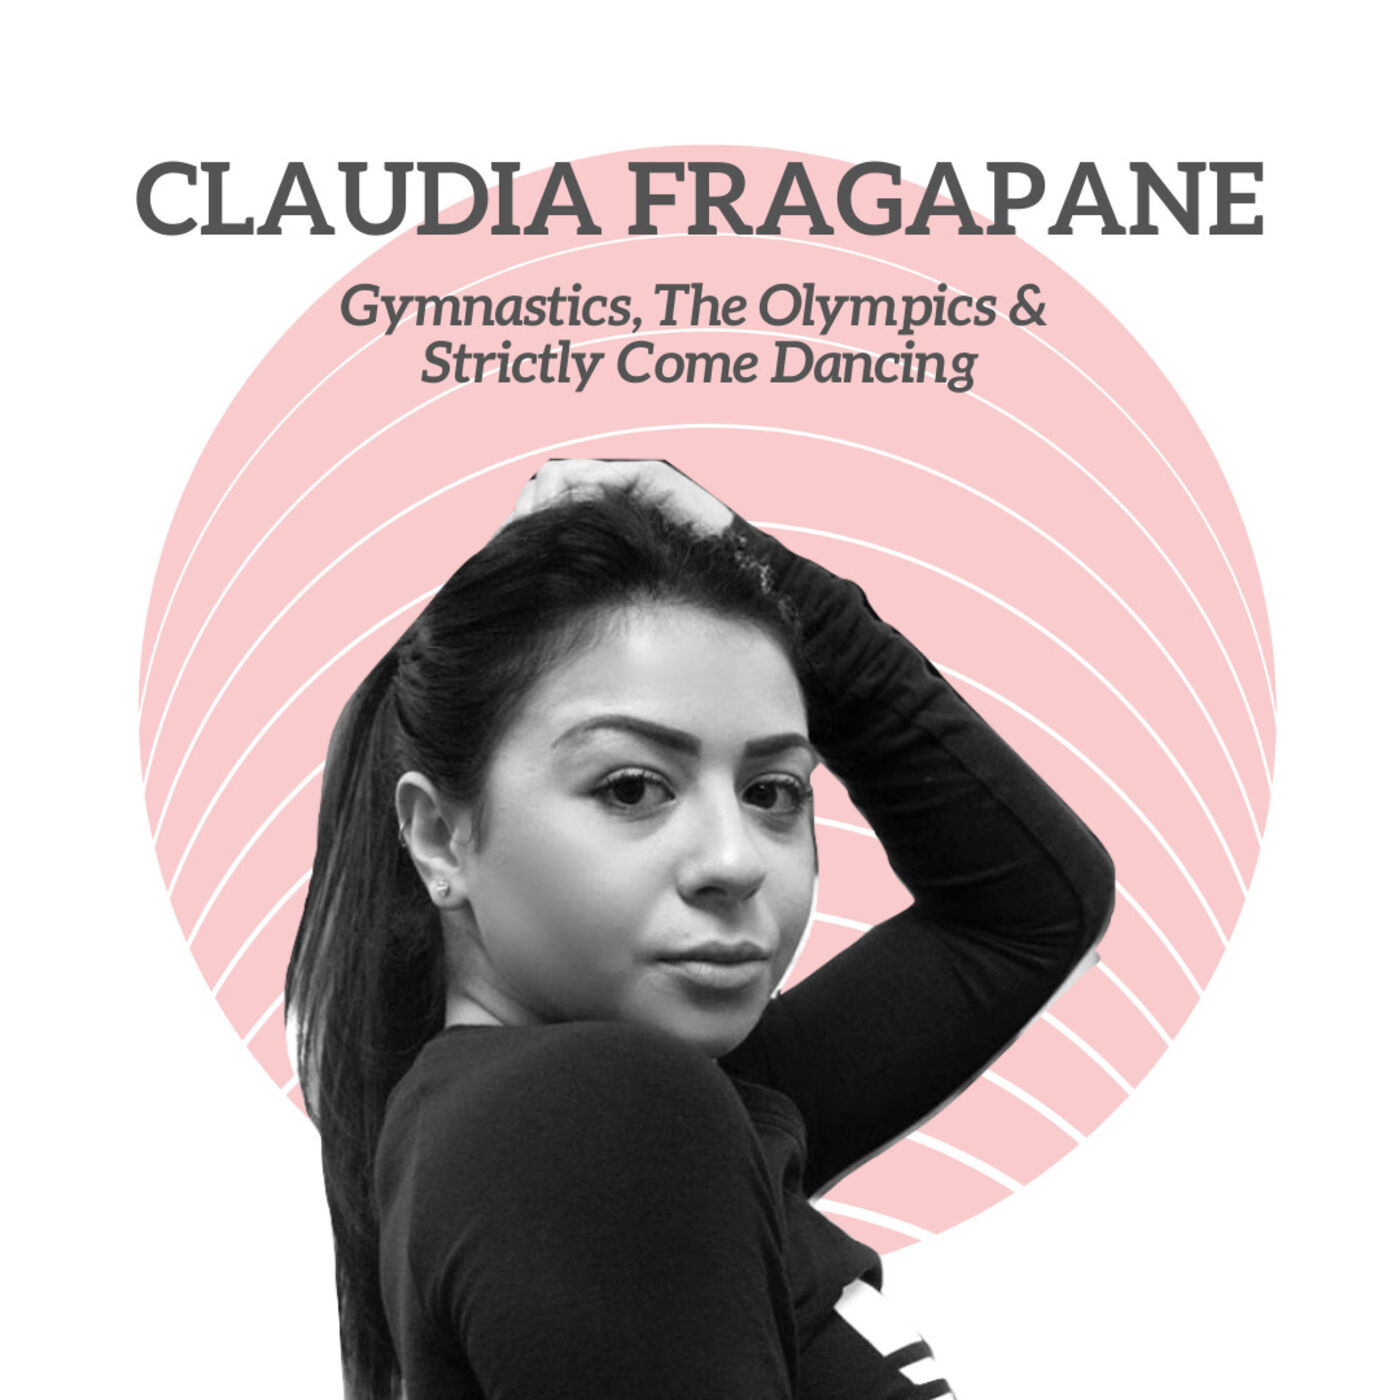 Claudia Fragapane - Gymnastics, The Olympics & Strictly Come Dancing